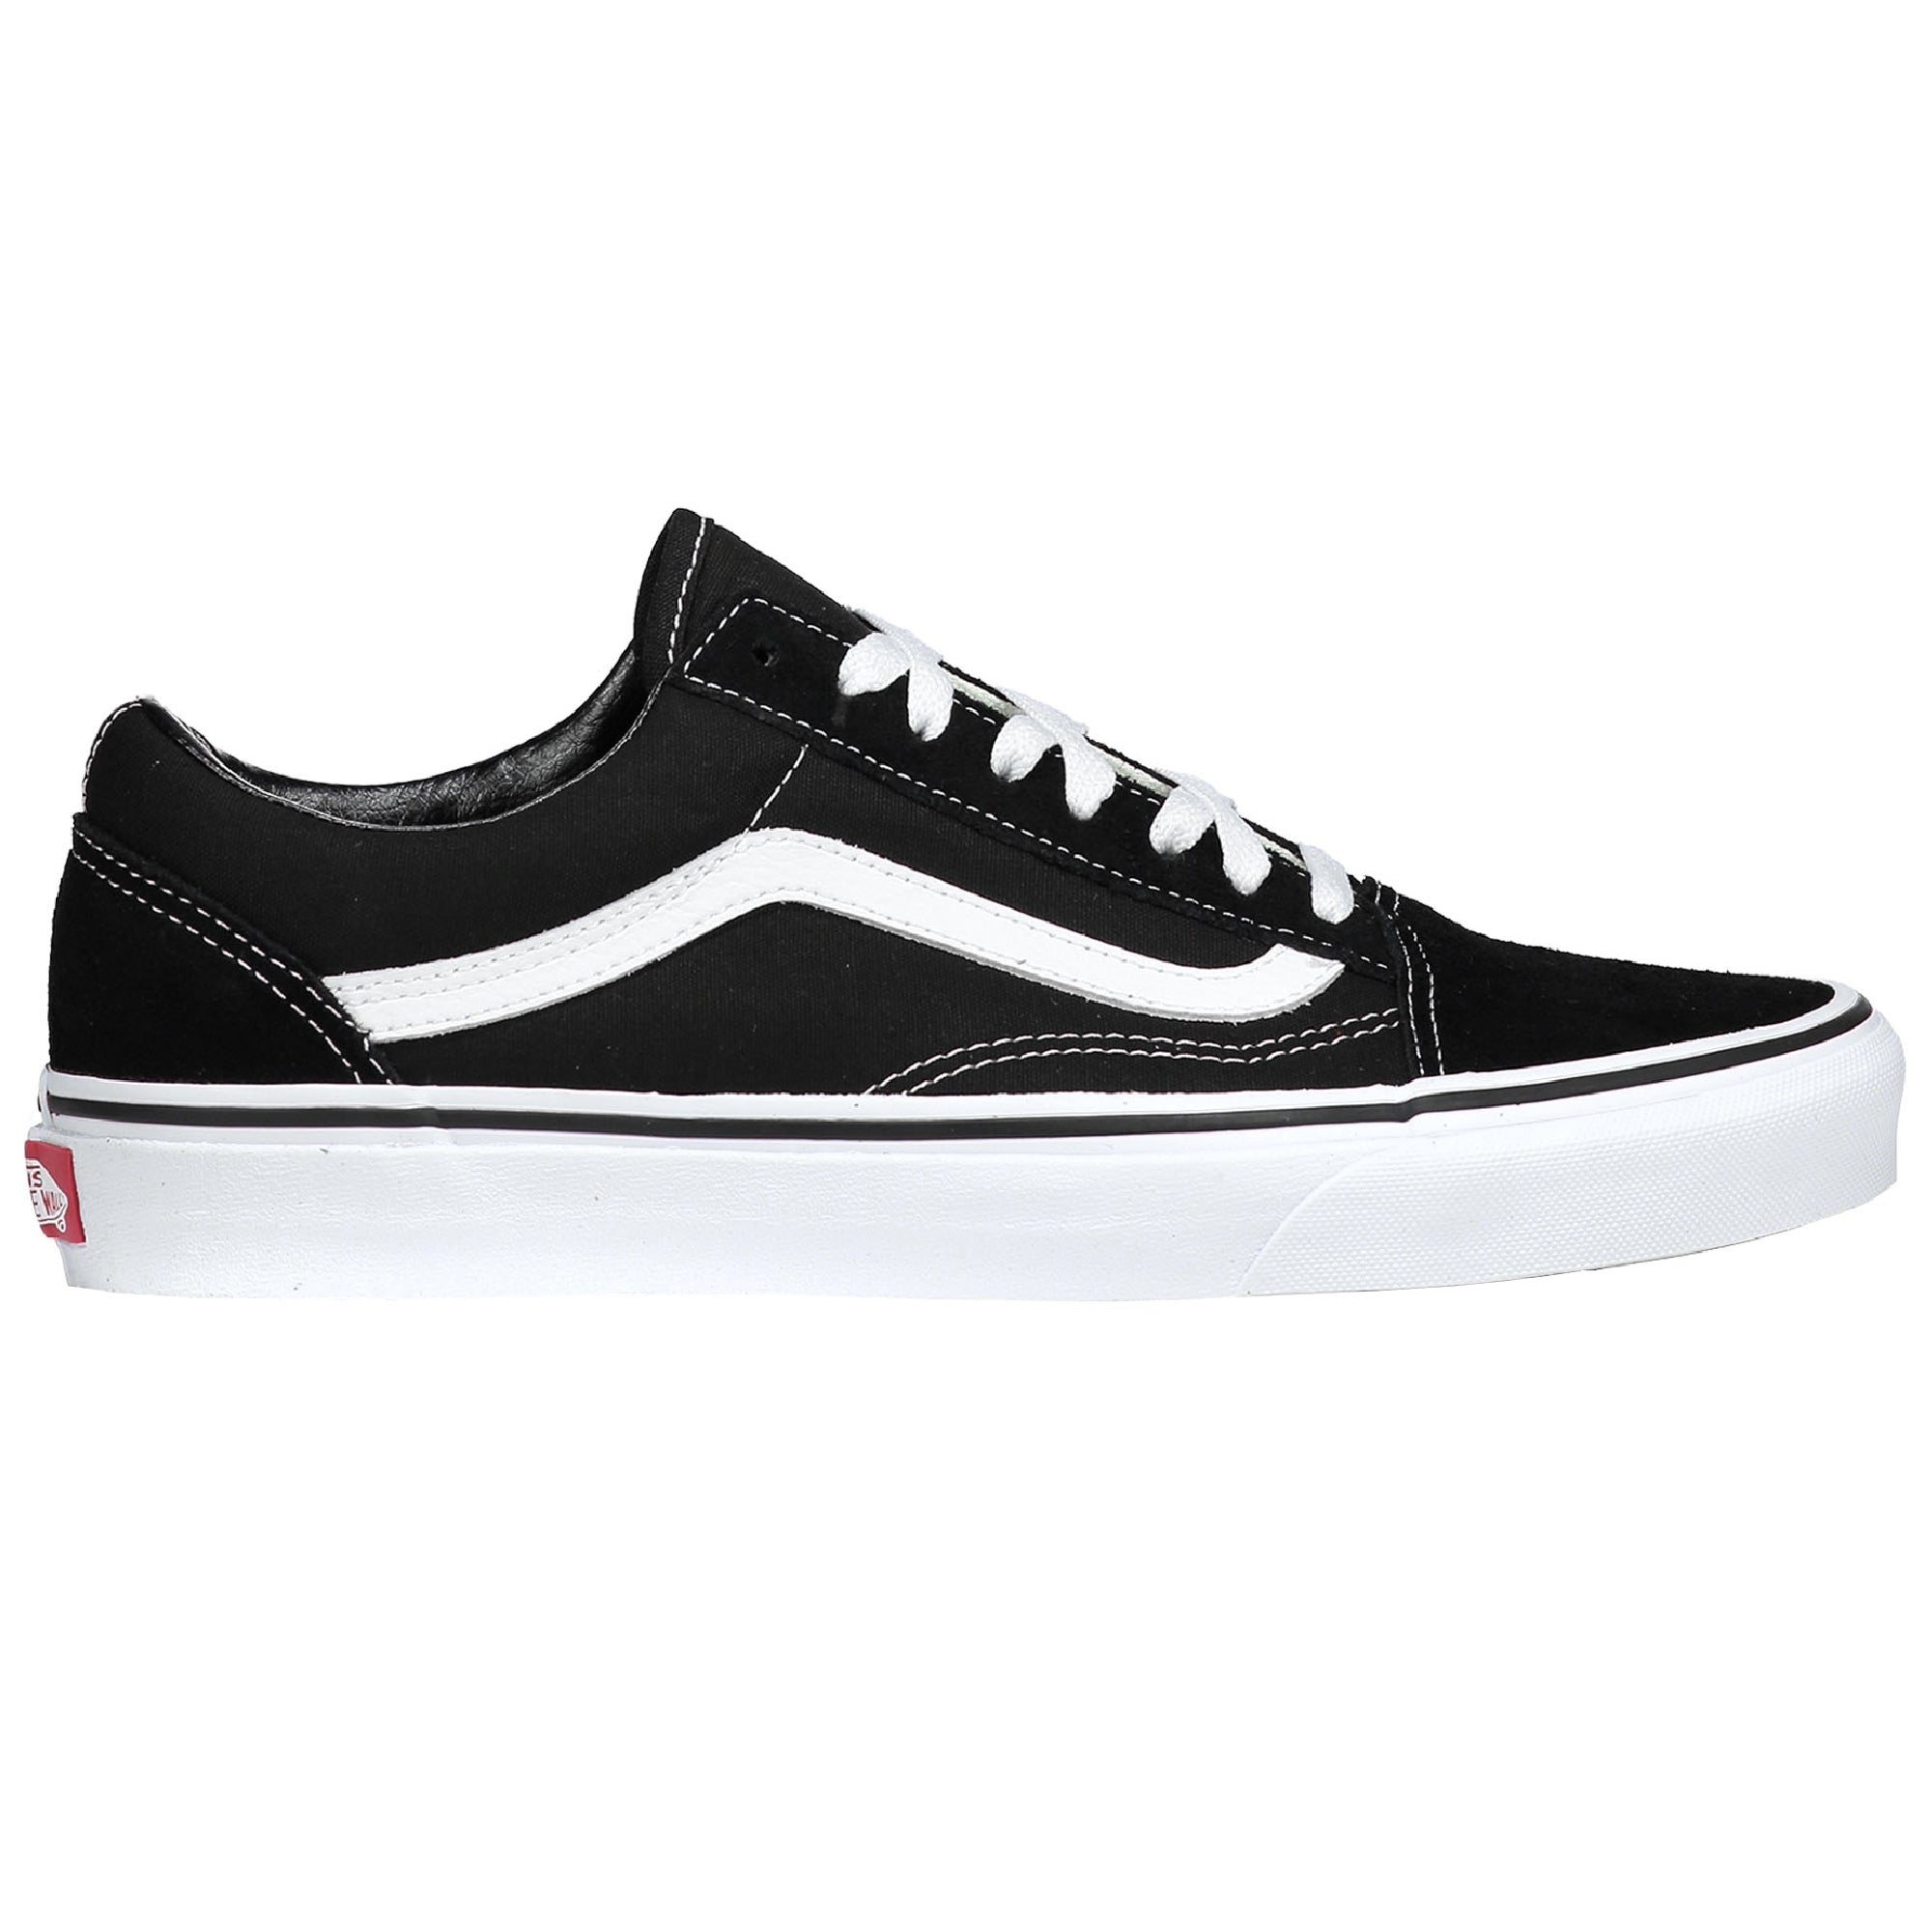 df63ec77ce95 Vans Old Skool Shoe at Extremepie.com